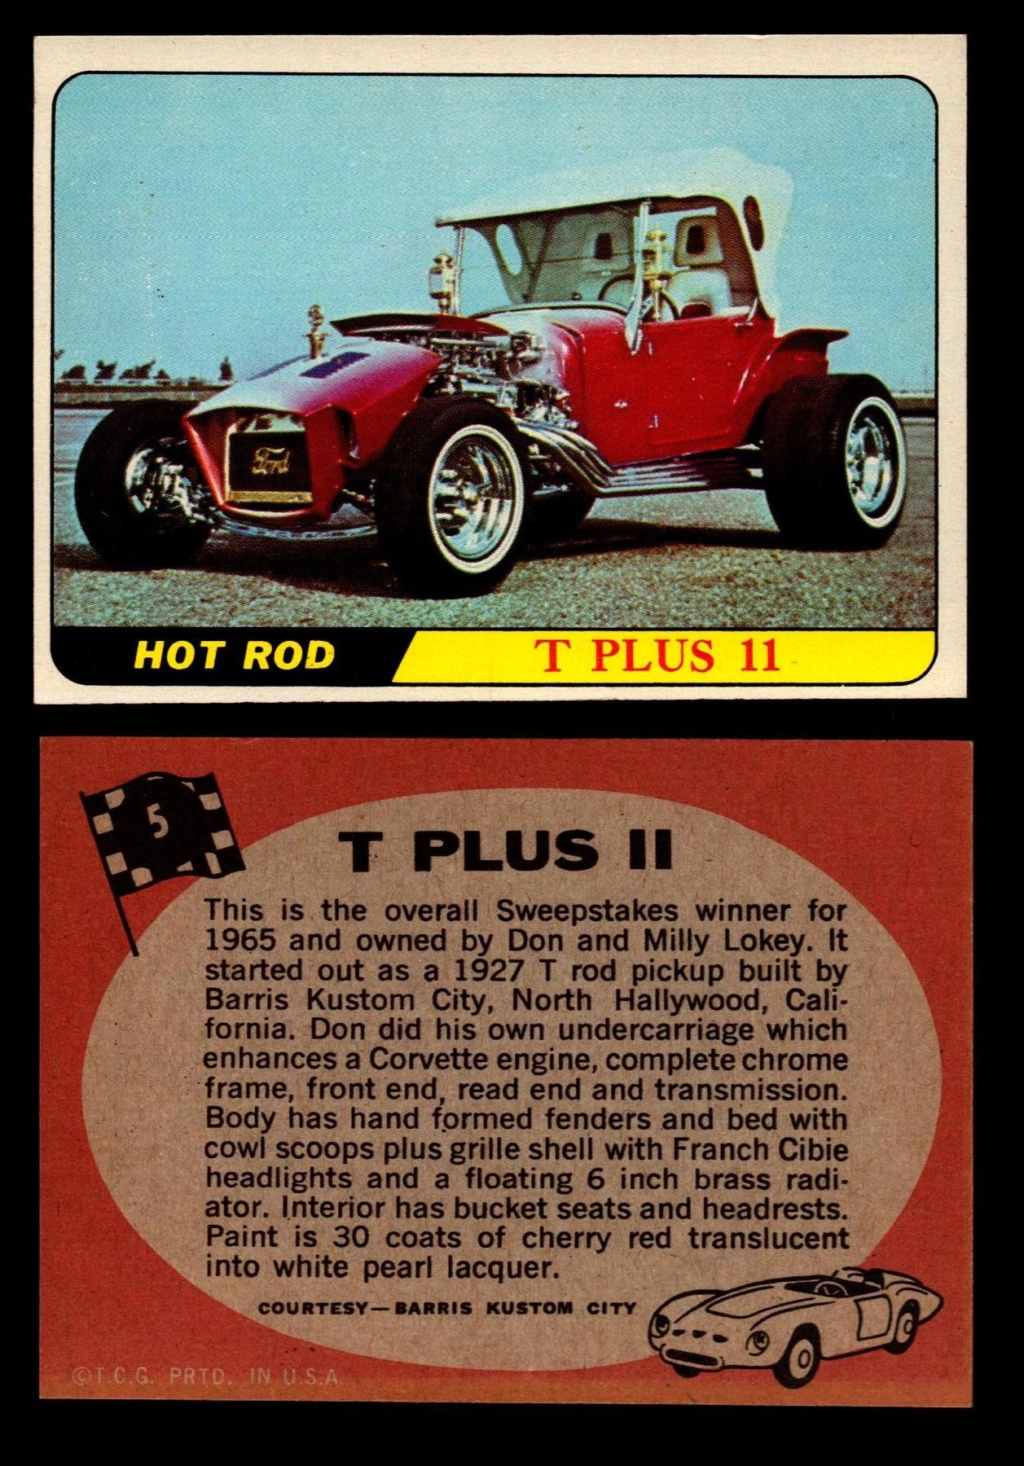 Hot Rods Topps - Vintage Trading Cards 1968 - Custom car - Dragster - Racer - Dream car - Barris Kustom City - Ed Roth Darrill Starbird, Gene Winfield, Bill Cuchenberry 5_b1d210